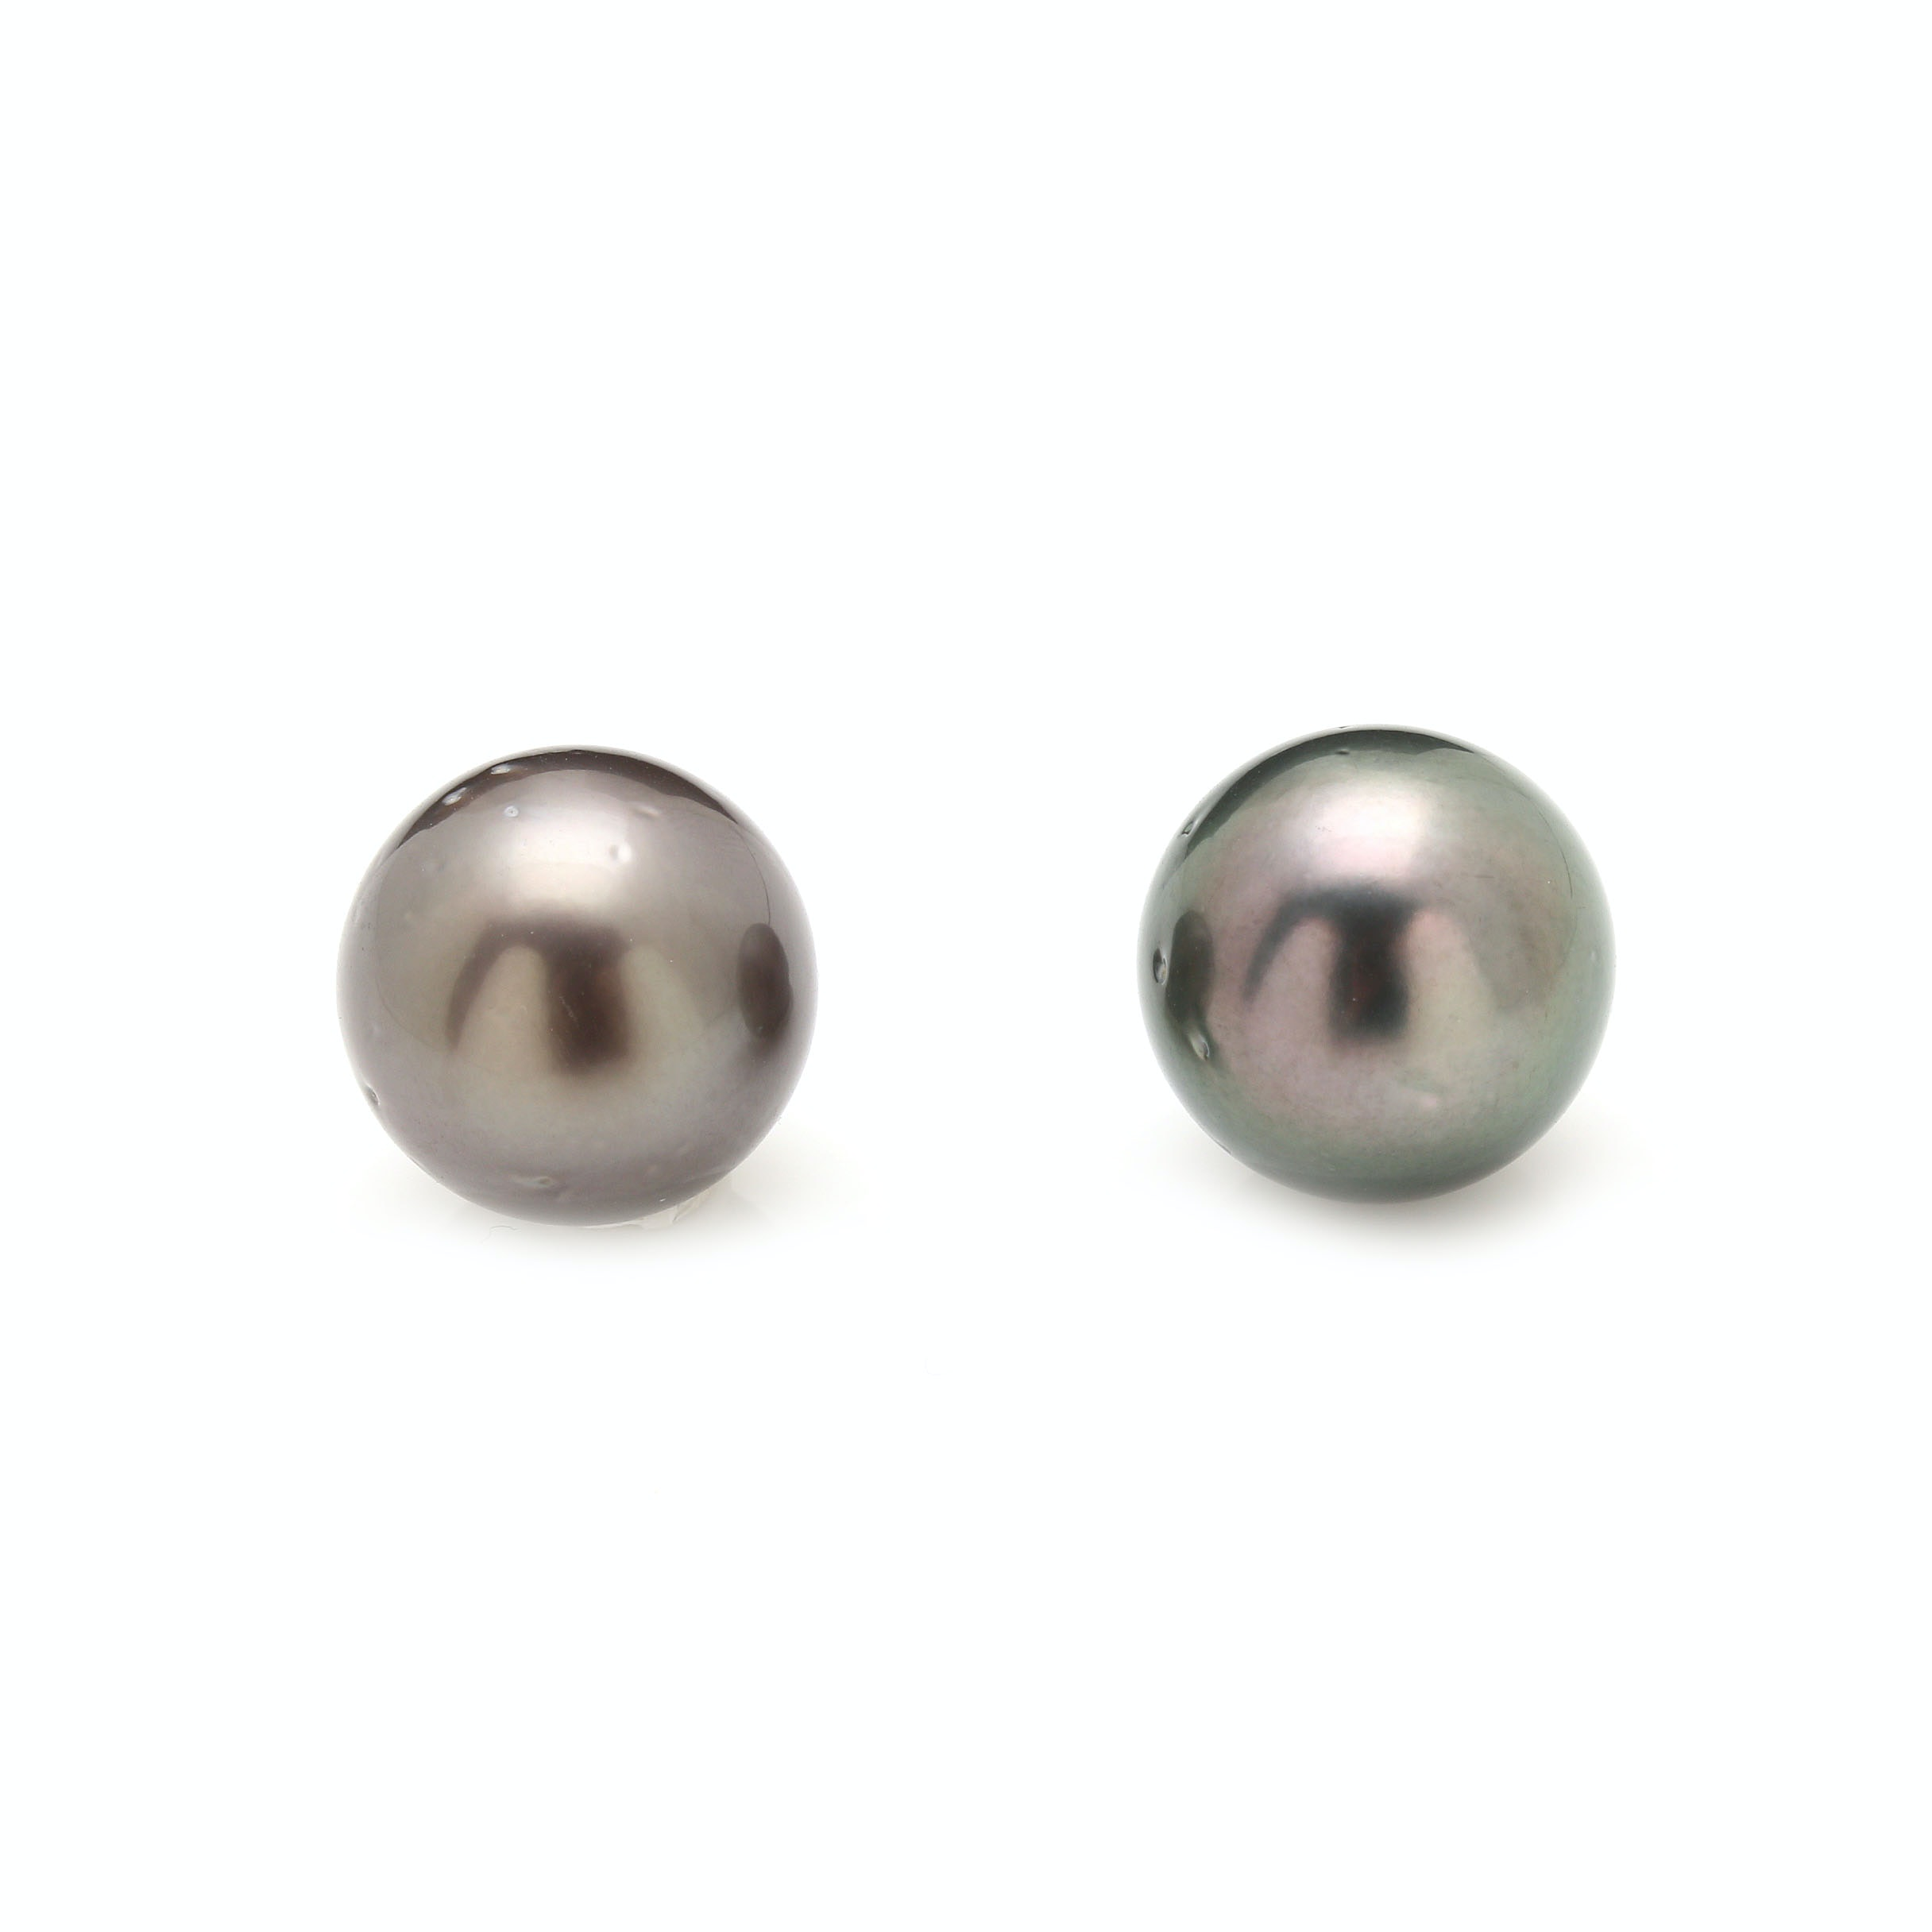 Loose Cultured Tahitian Pearls